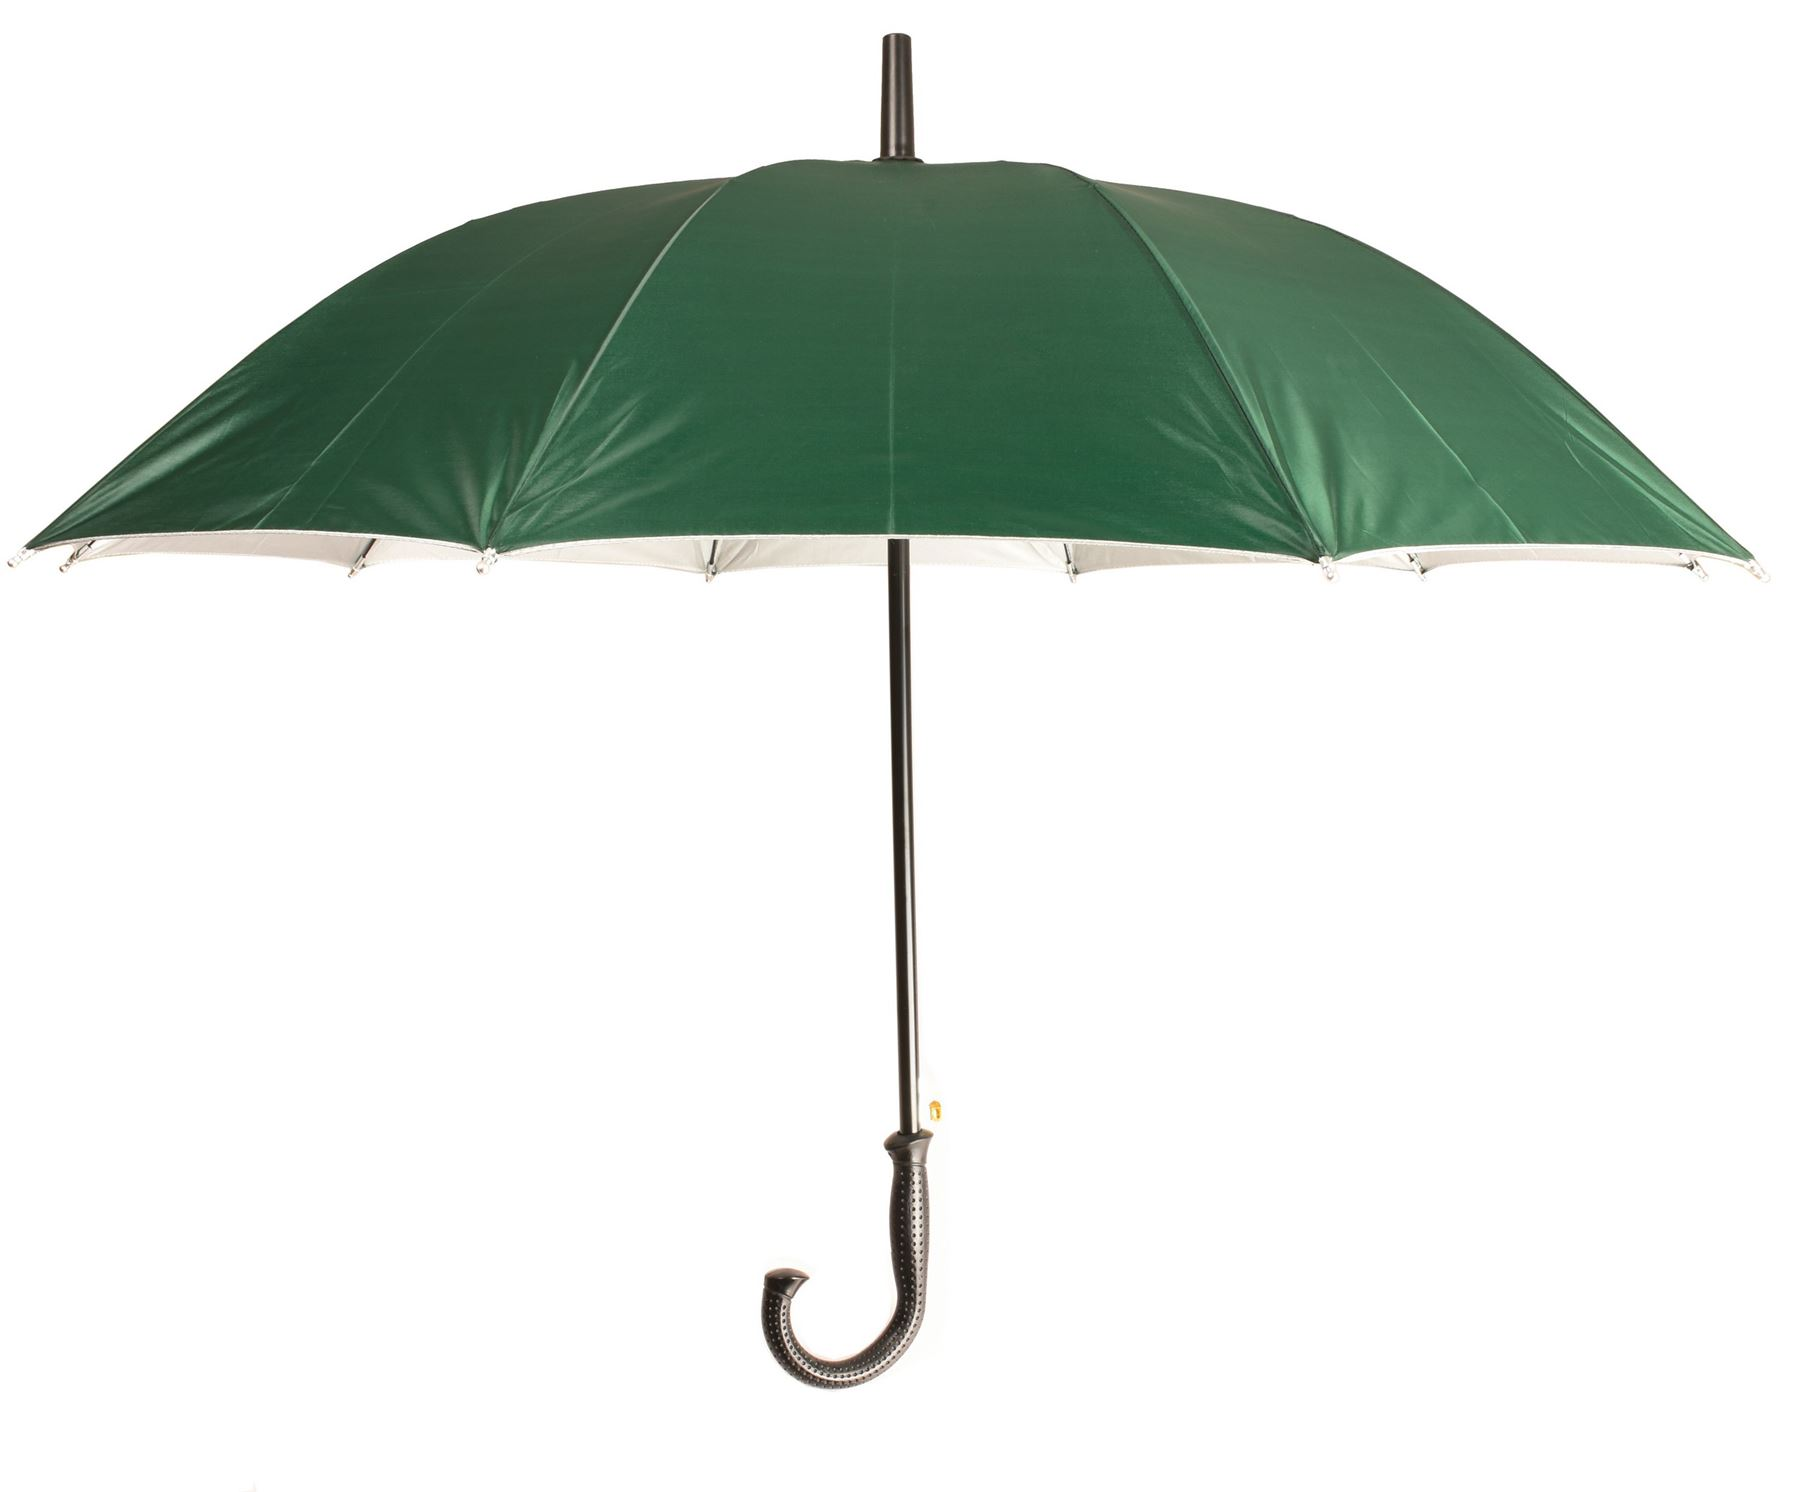 1db05b1ee New Crook Handle Automatic Open Umbrella Deluxe Brolly Walking Stick ...